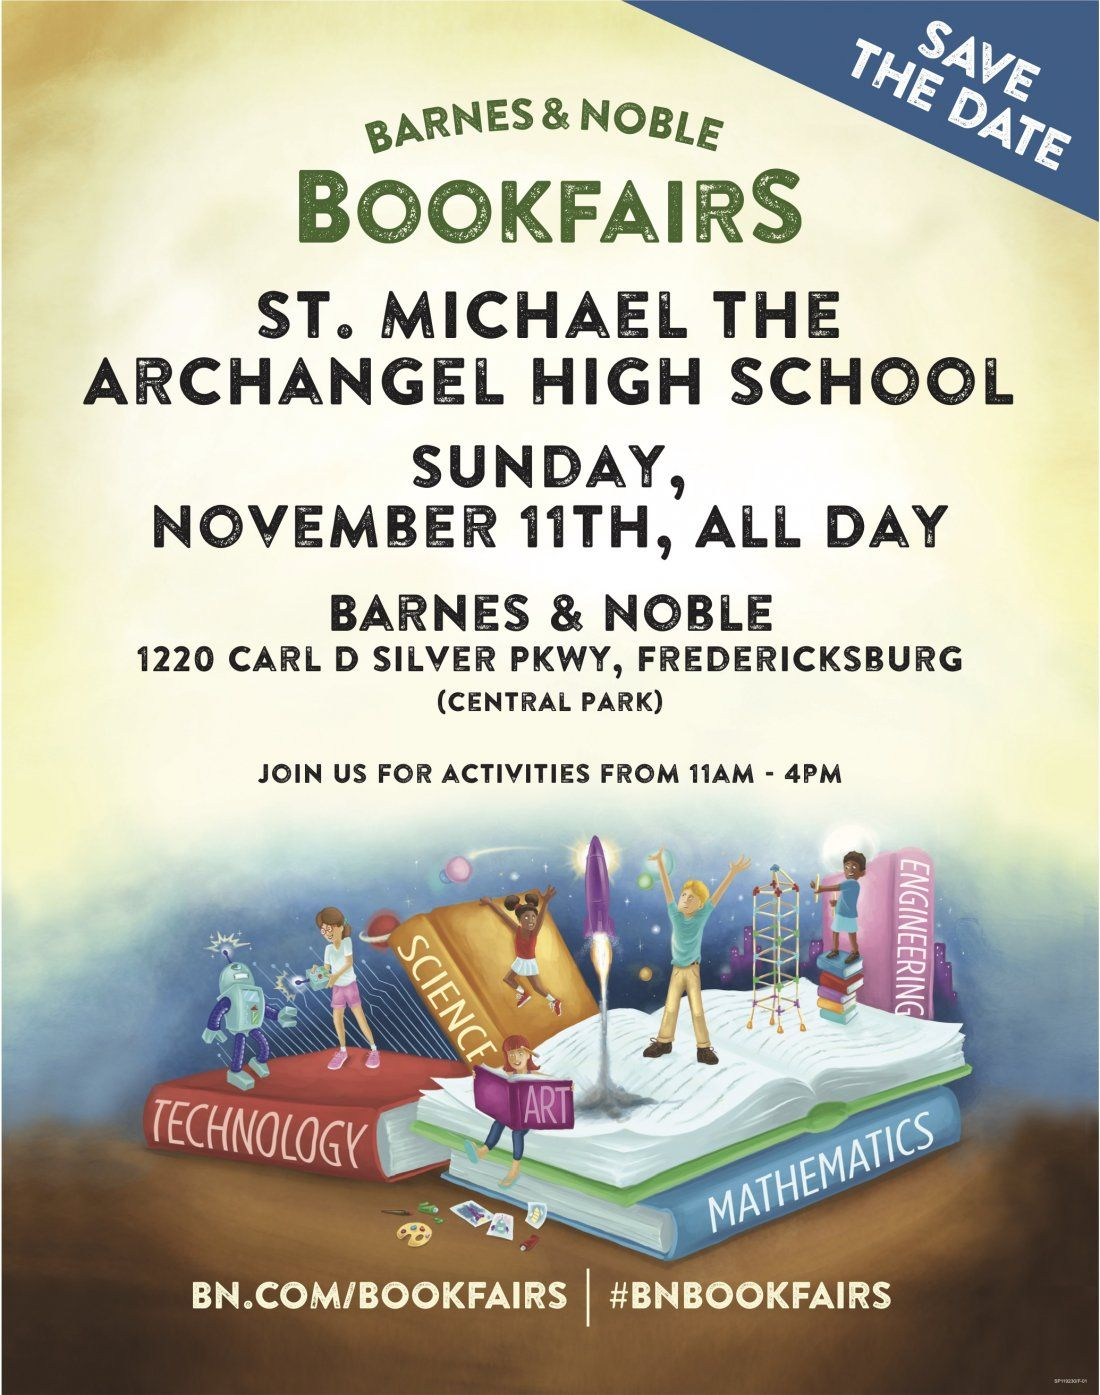 Barnes & Noble Bookfair to benefit St. Michael High School